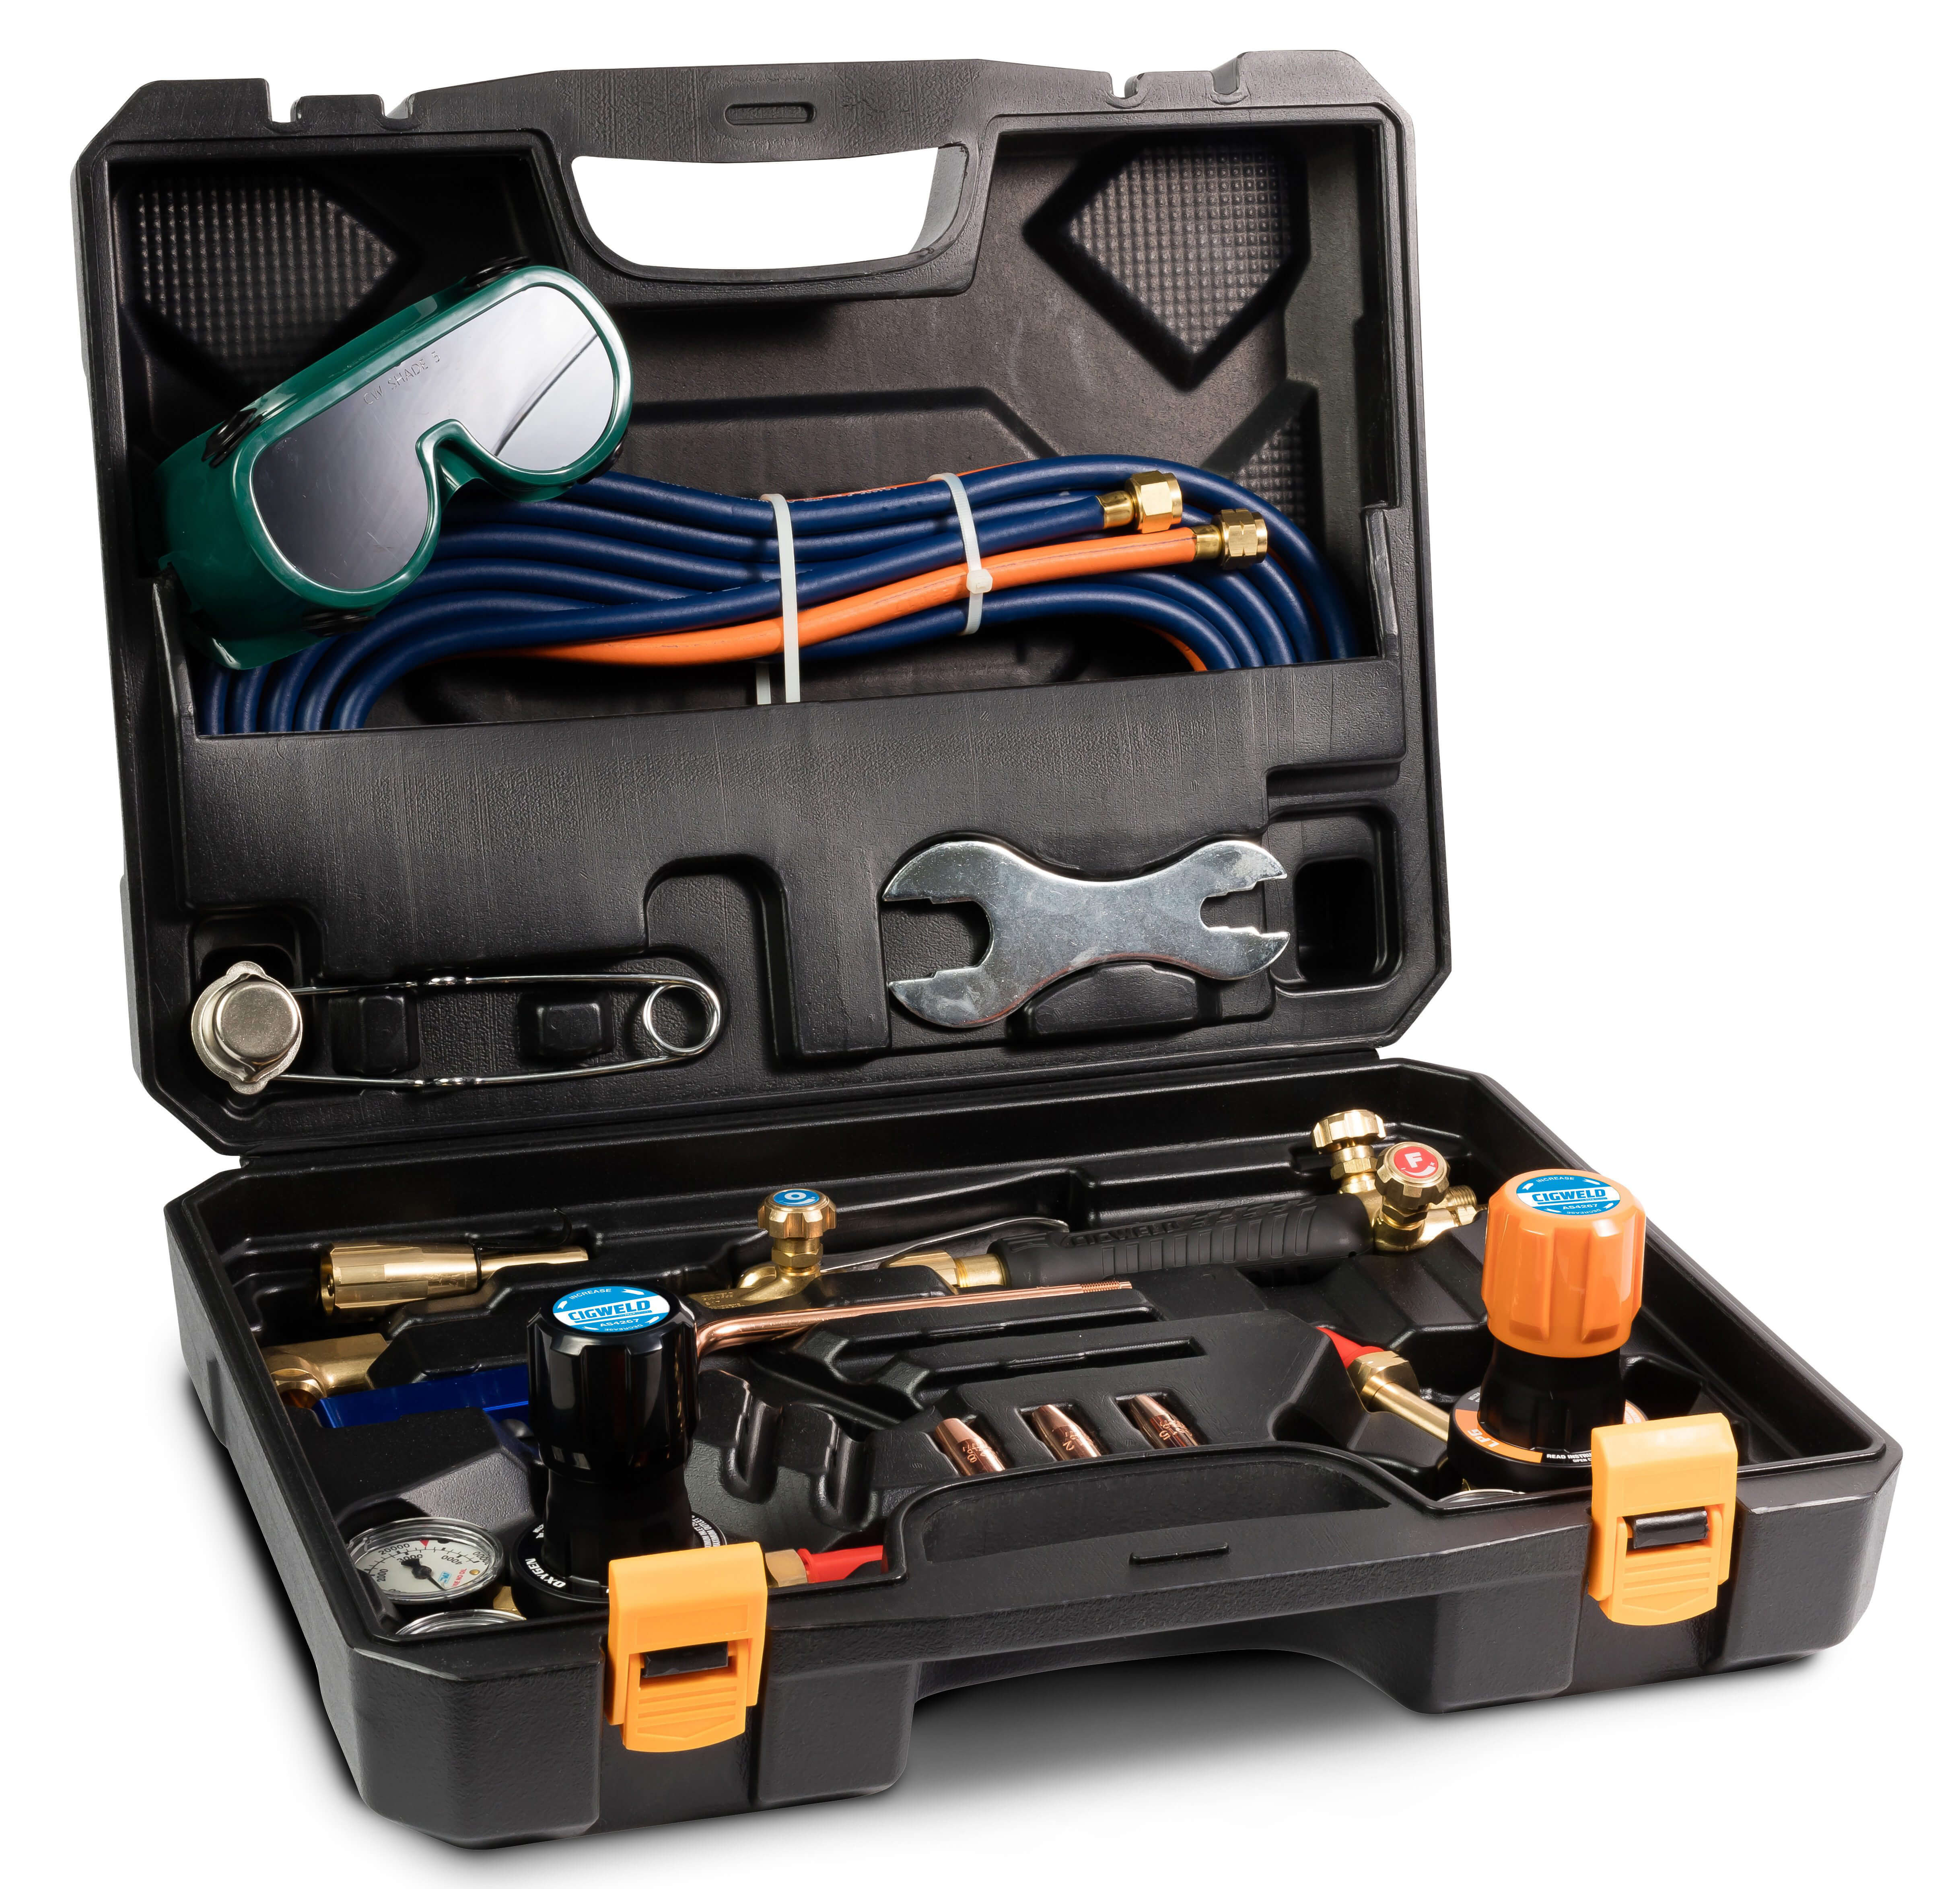 Cutskill Tradesman Oxy Lpg Cutting Welding Kit